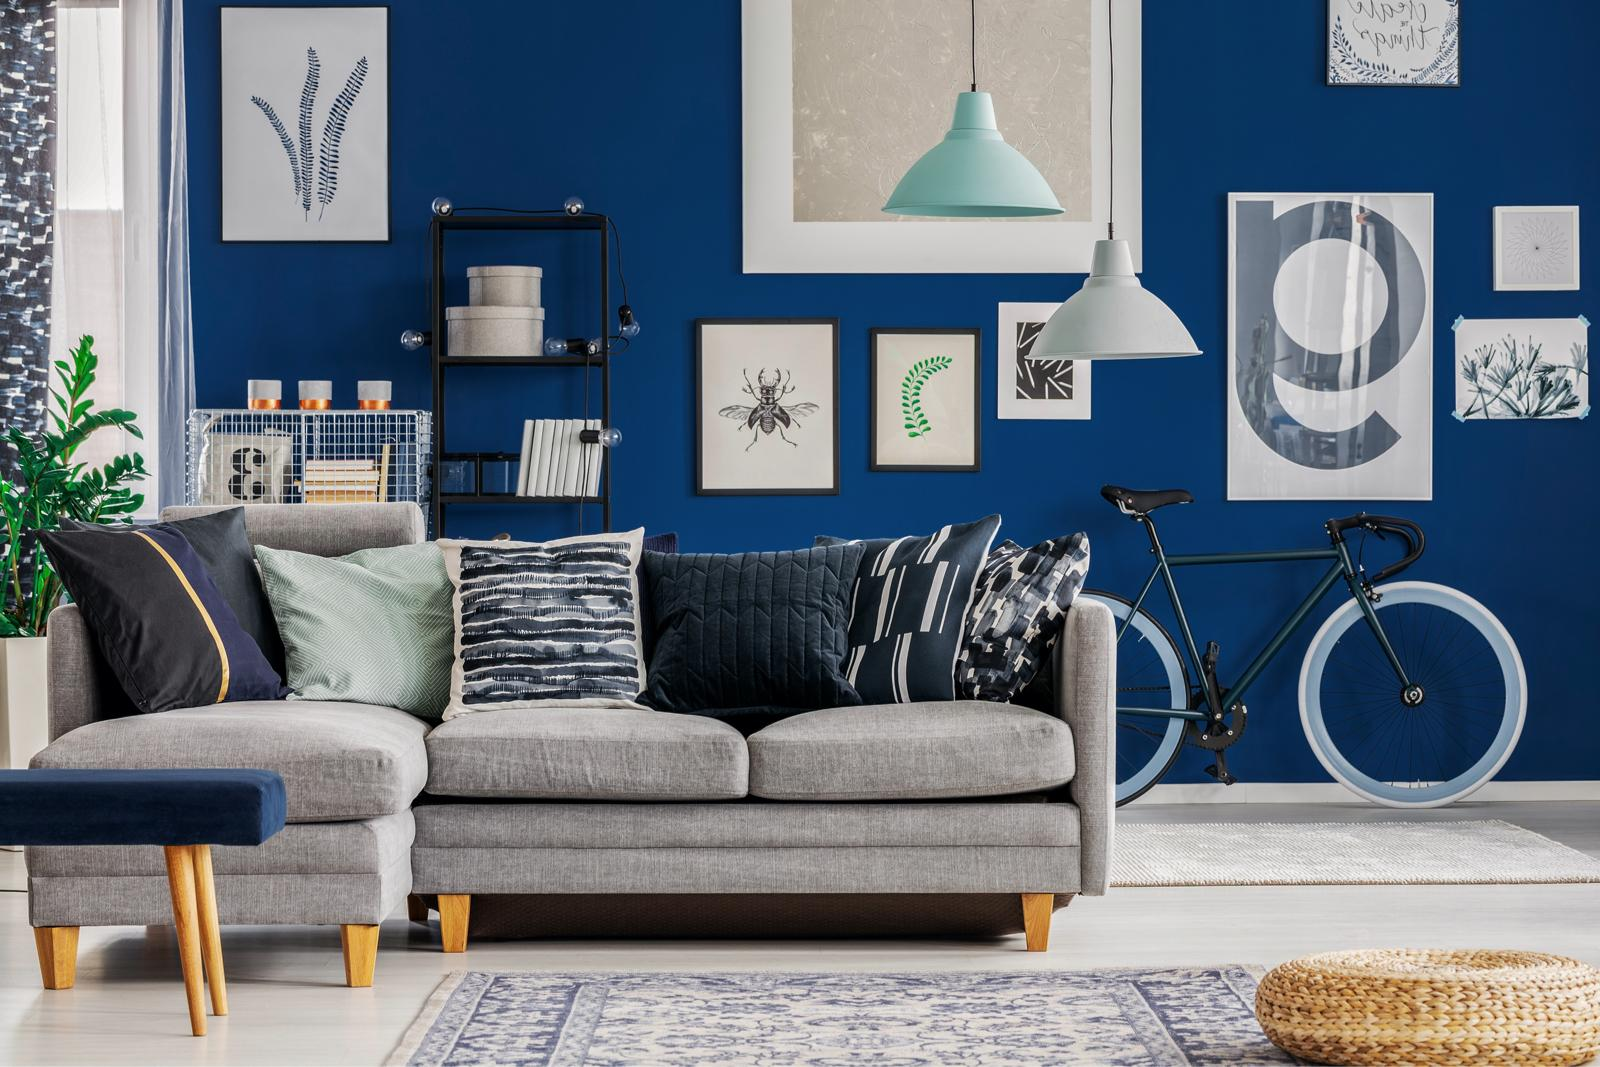 Maximalism Style And Why We Love It 16, Paneling Factory Of Virginia